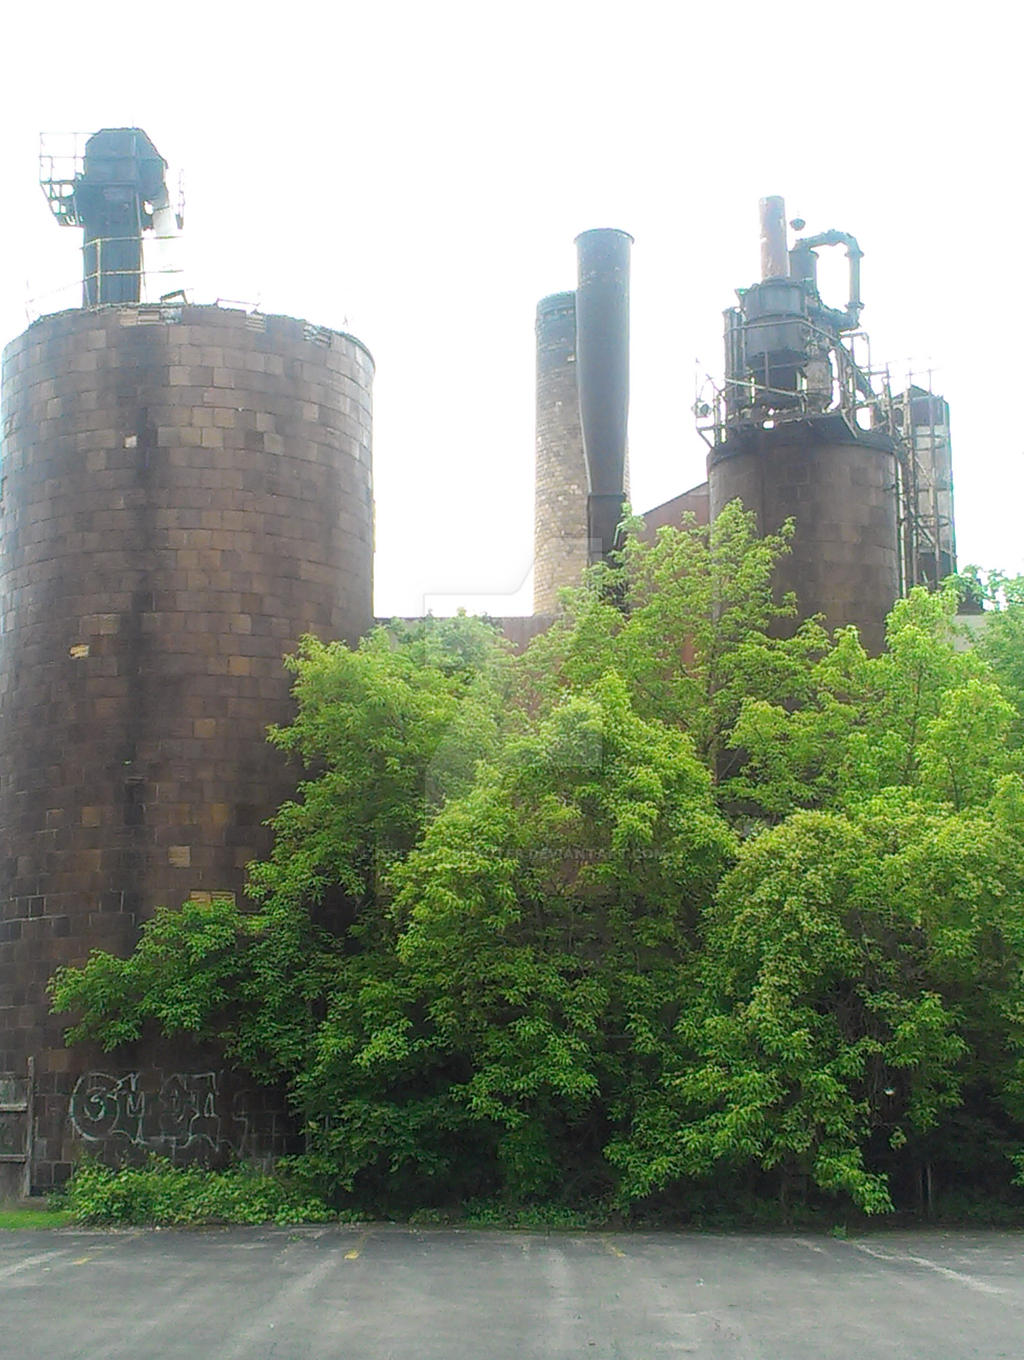 Part of the old Gerber factory by Android-shooter